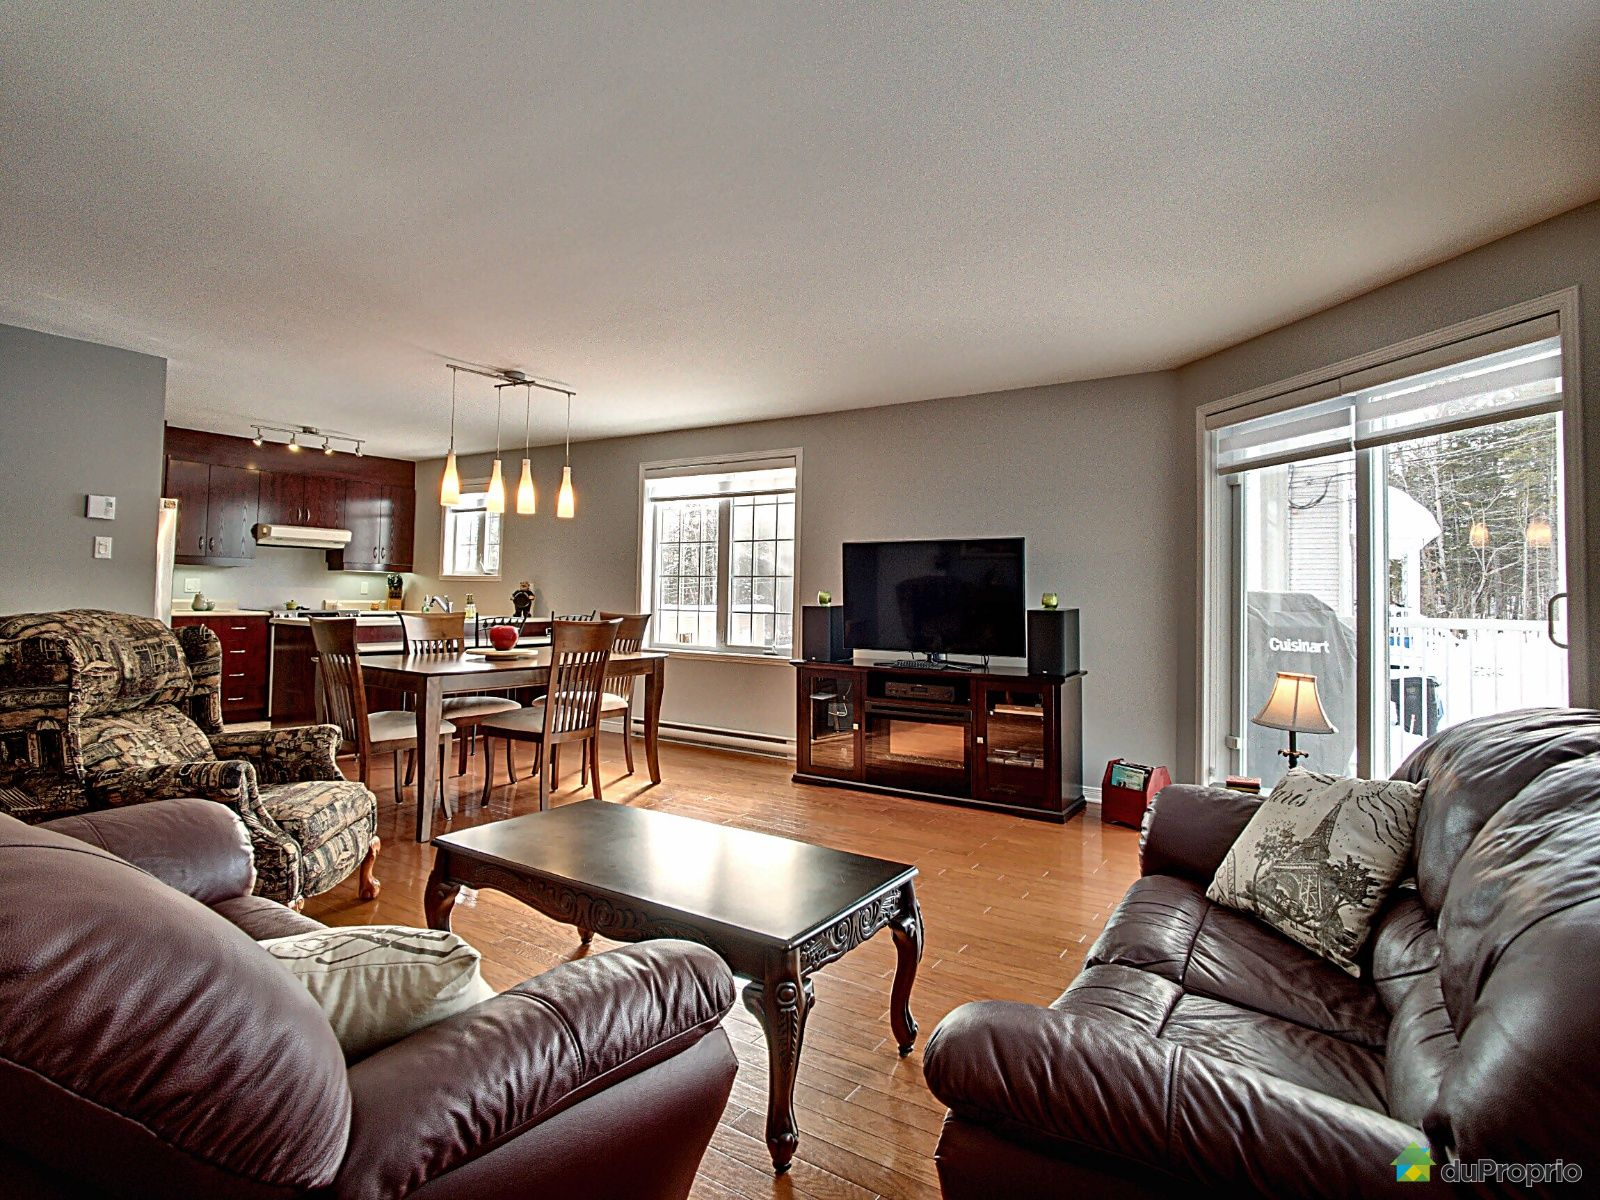 Overall View - 6659 rue Vézina, St-Émile for sale